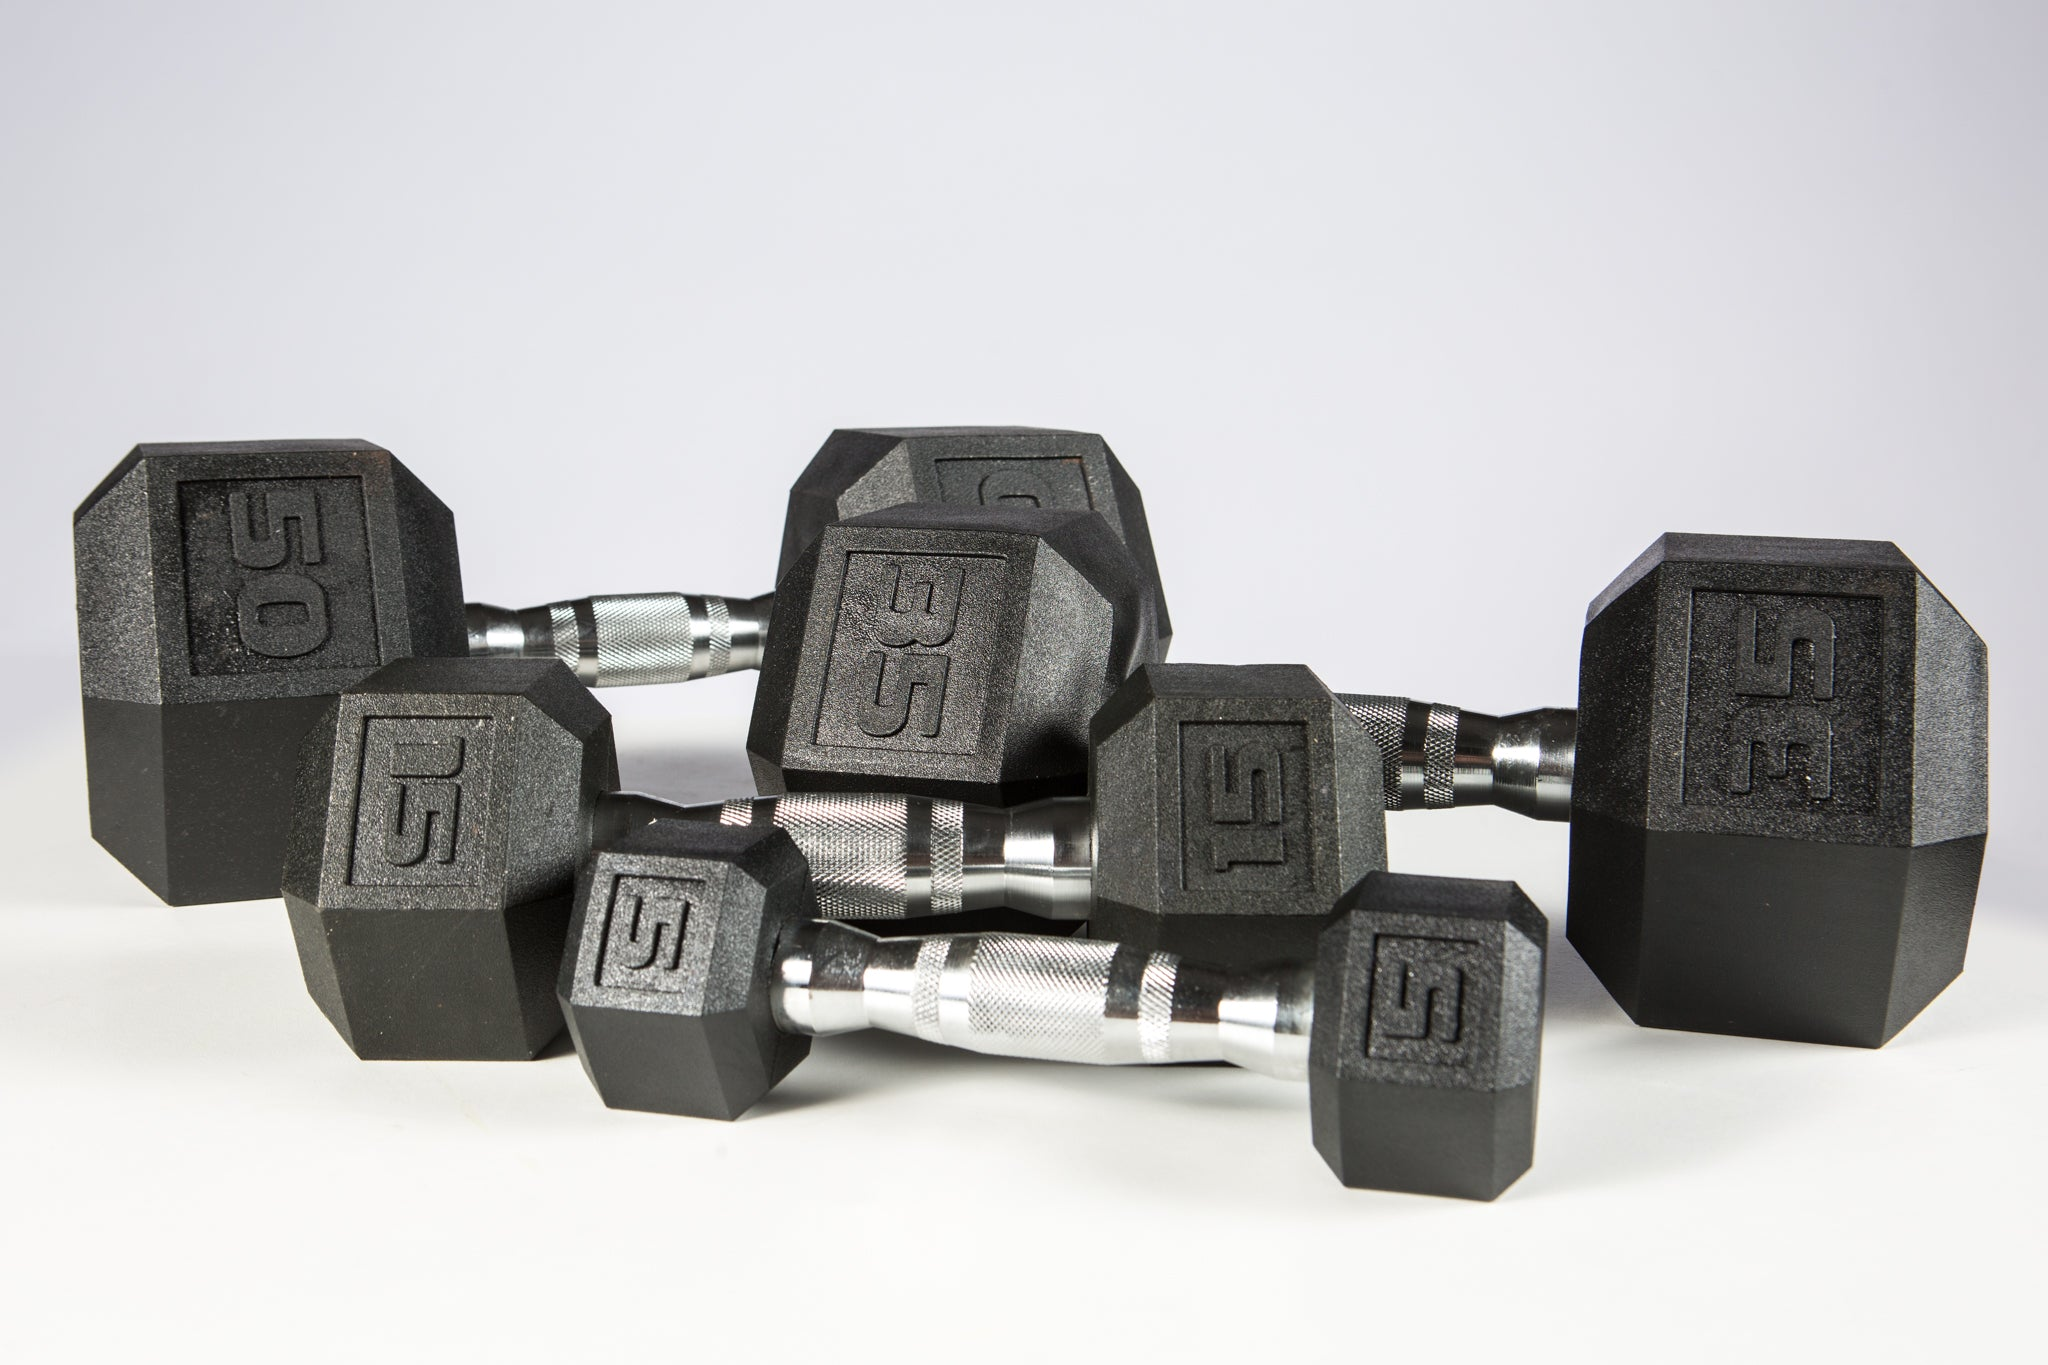 York Premium PVC Hex Dumbbell Set, 5 to 50lbs